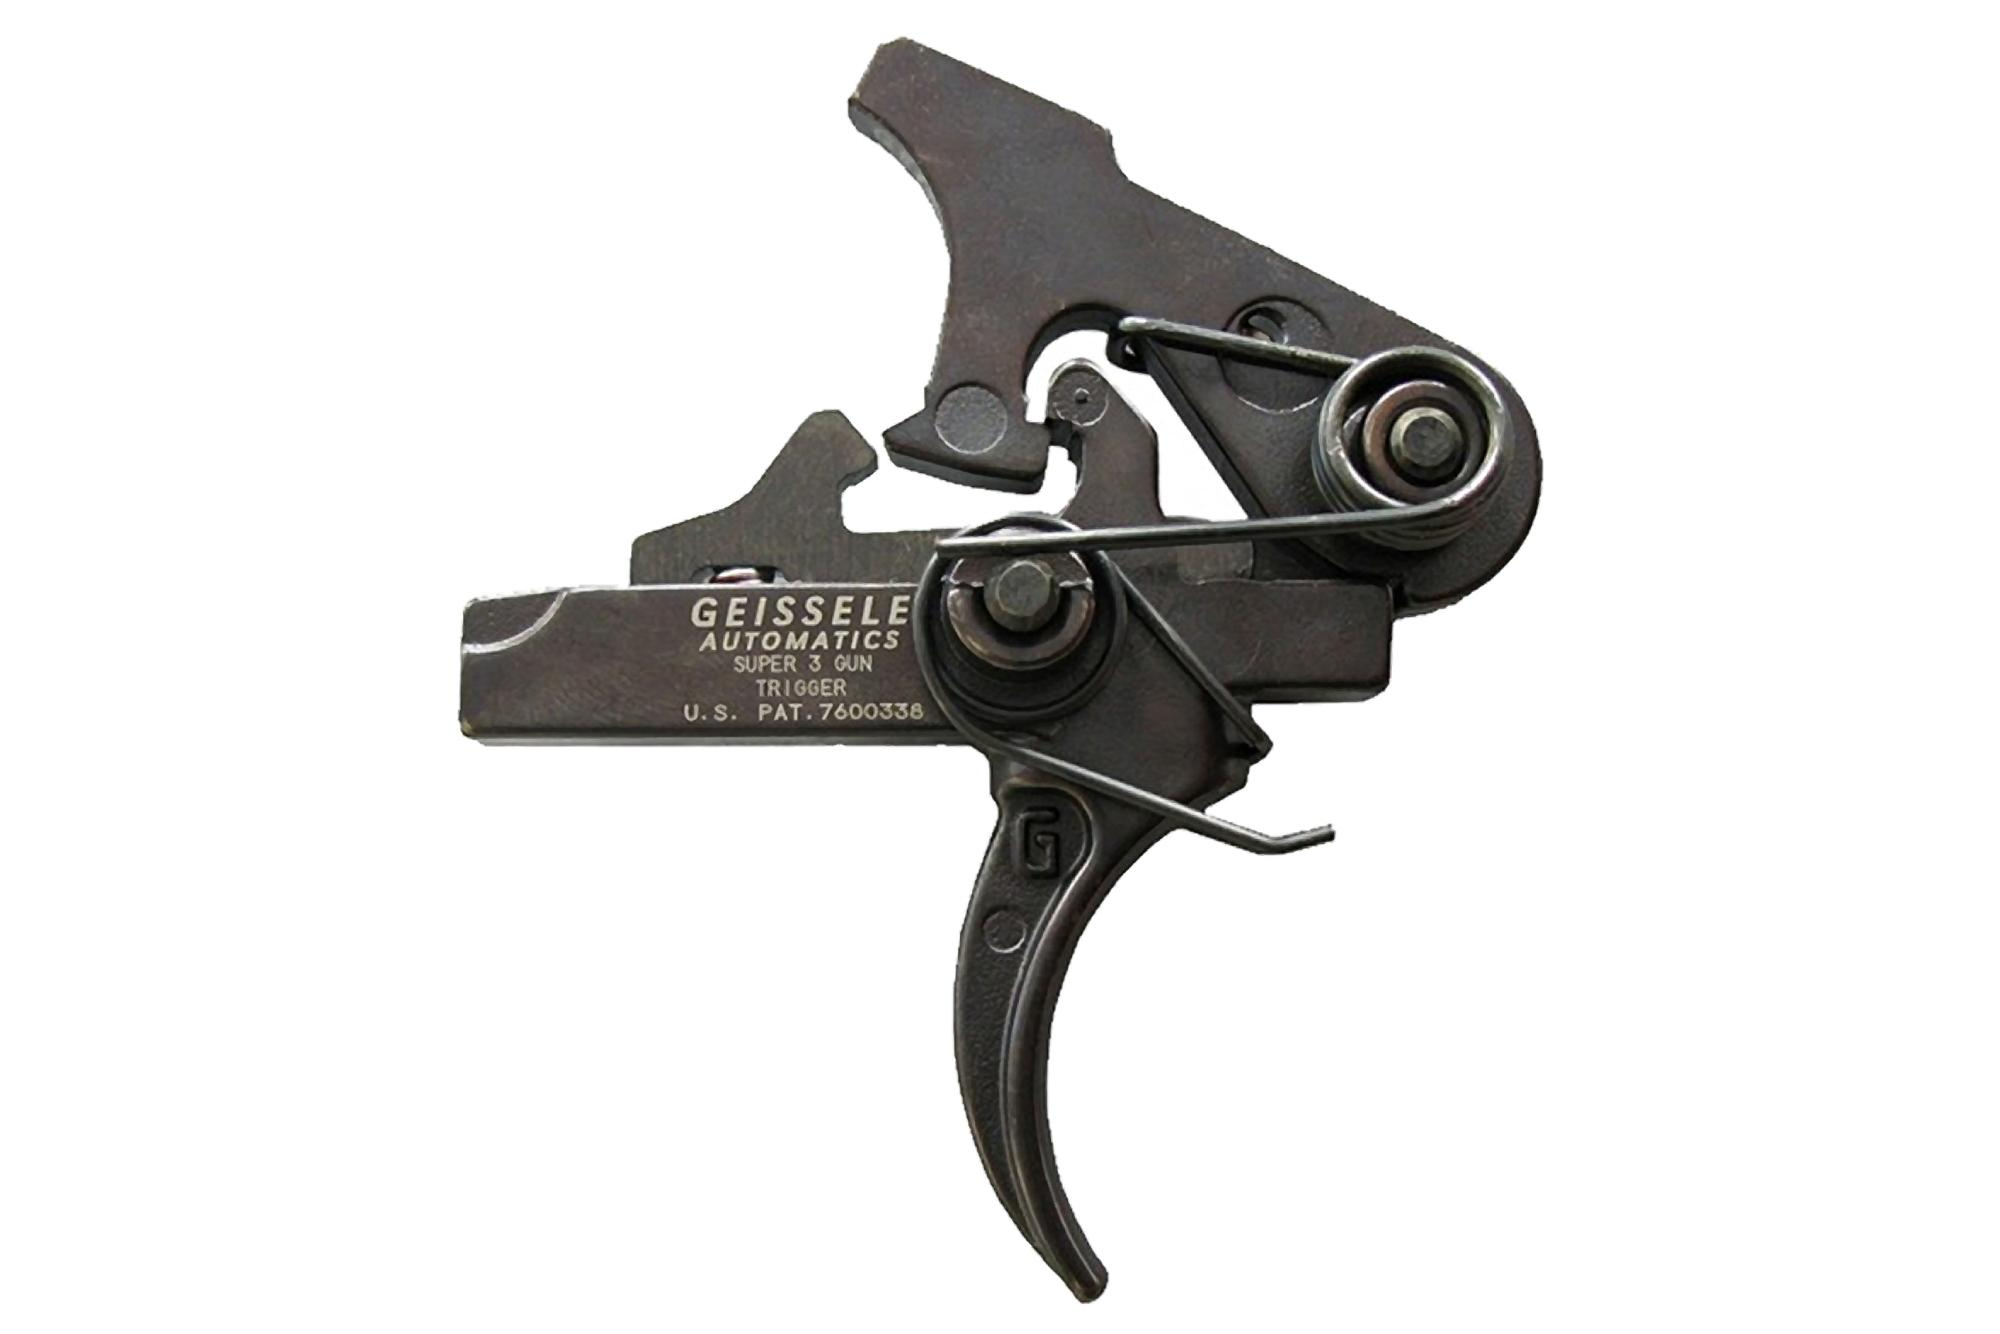 The Geissele Automatics Super 3 Gun S3G Hybrid AR-15 Trigger is designed for competition shooting